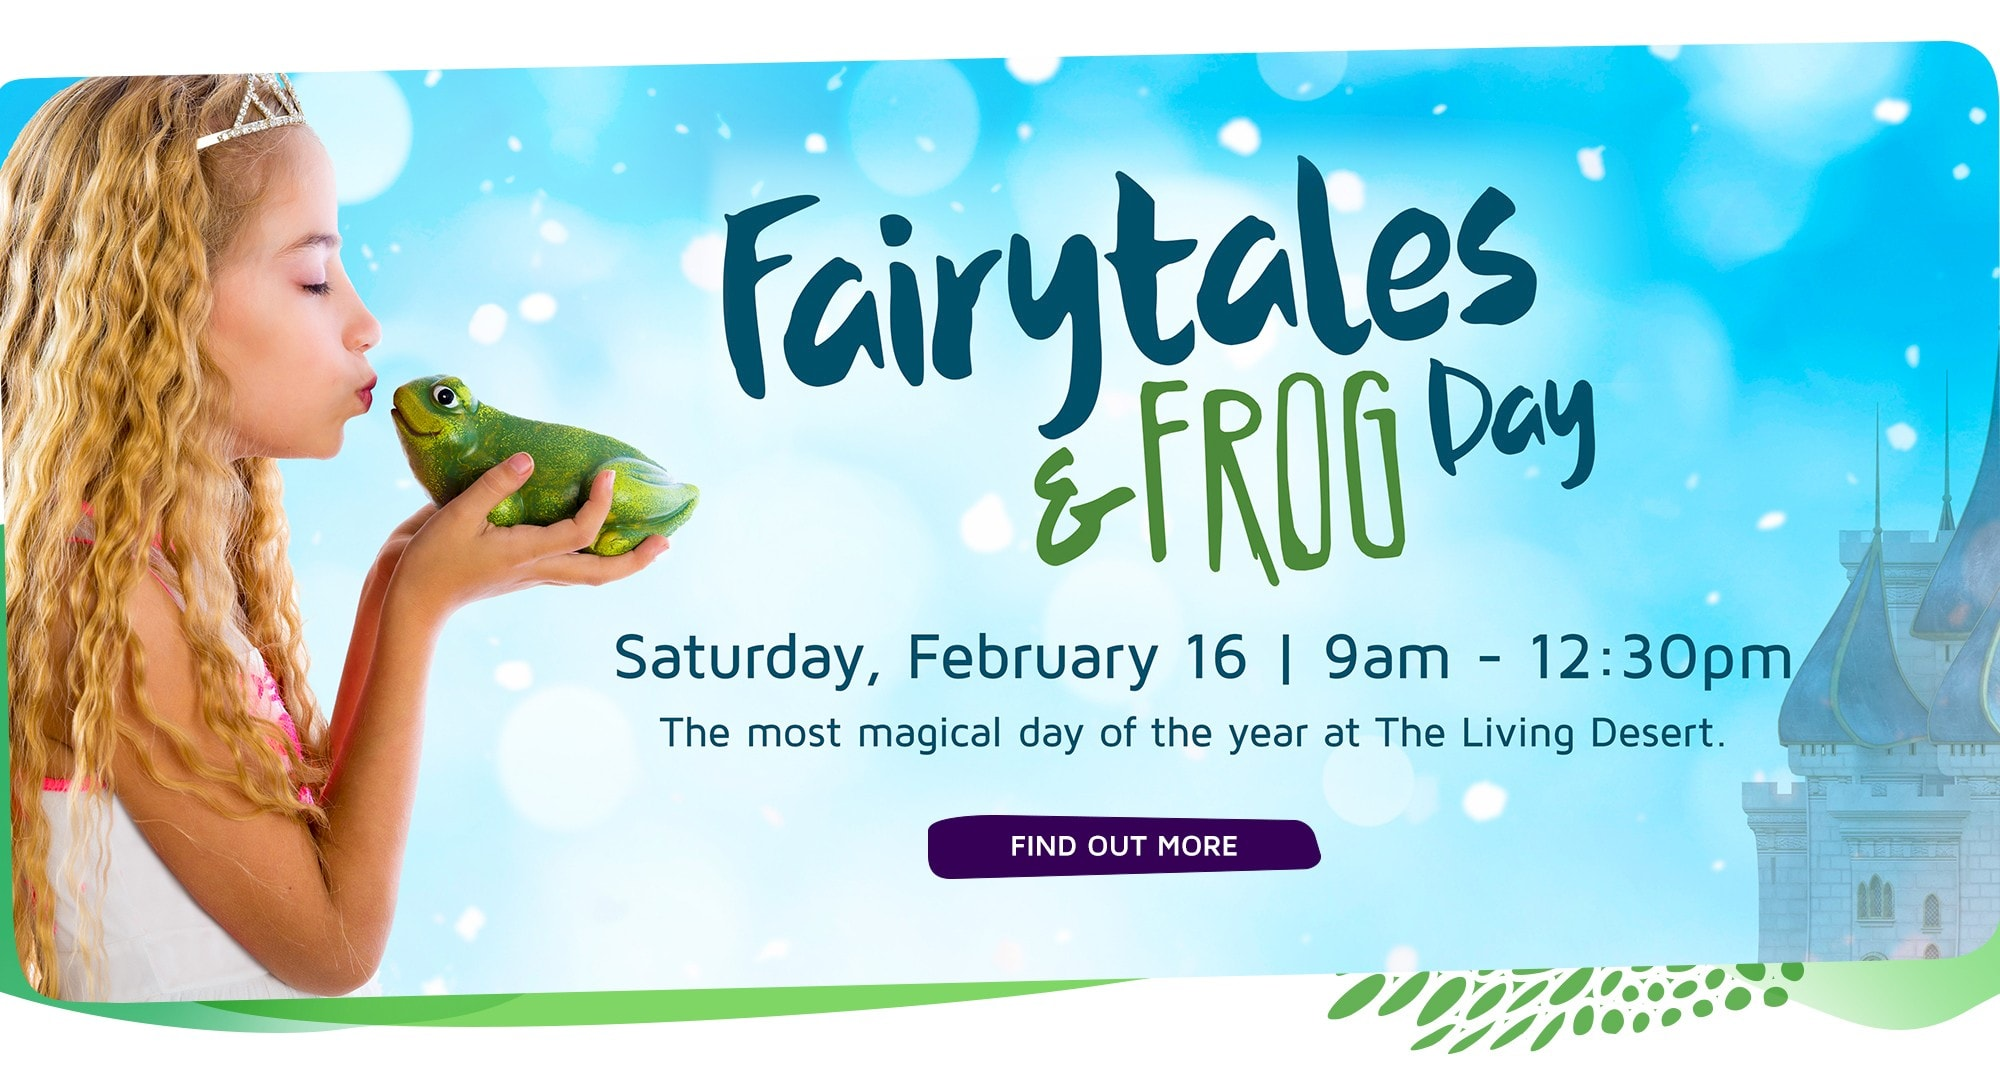 Fairytales and Frog Day at The Living Desert Zoo and Gardens